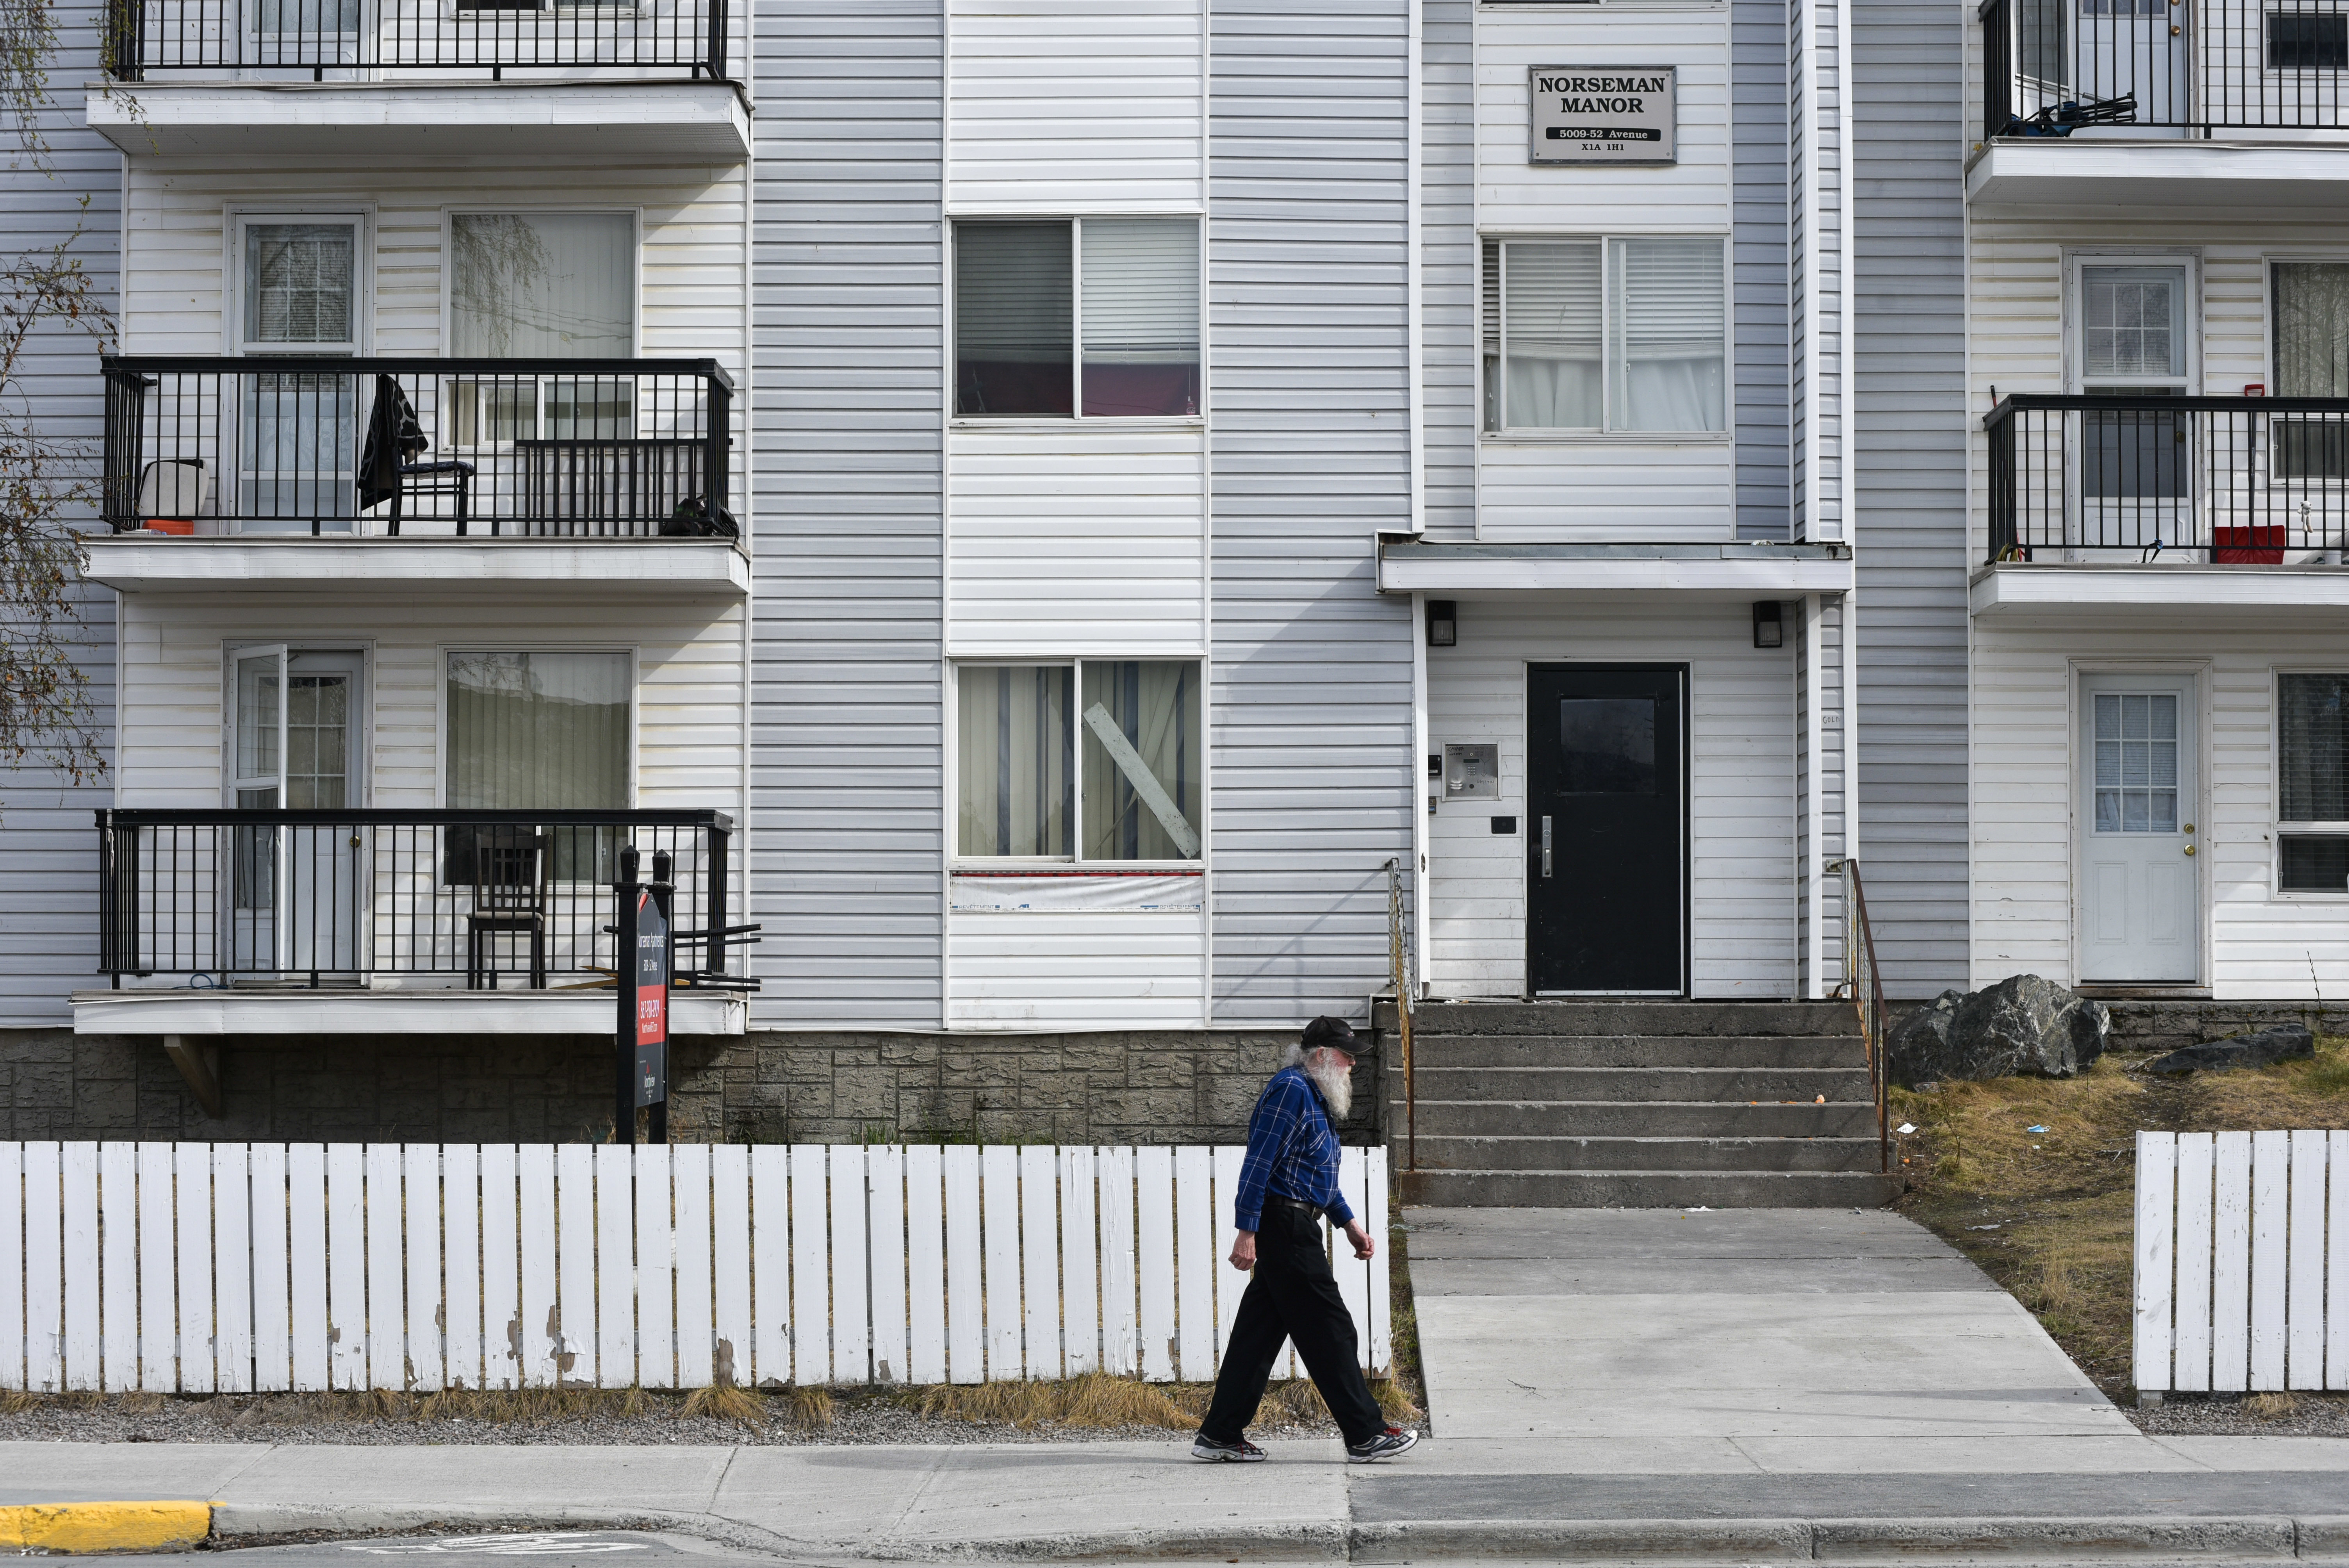 A man walks past Northview's Norseman Apartments in Yellowknife. Following the 2008 financial crisis, Northview acknowledged in its annual reporting that it had been deferring maintenance on properties for some time. (Walter Strong/CBC)